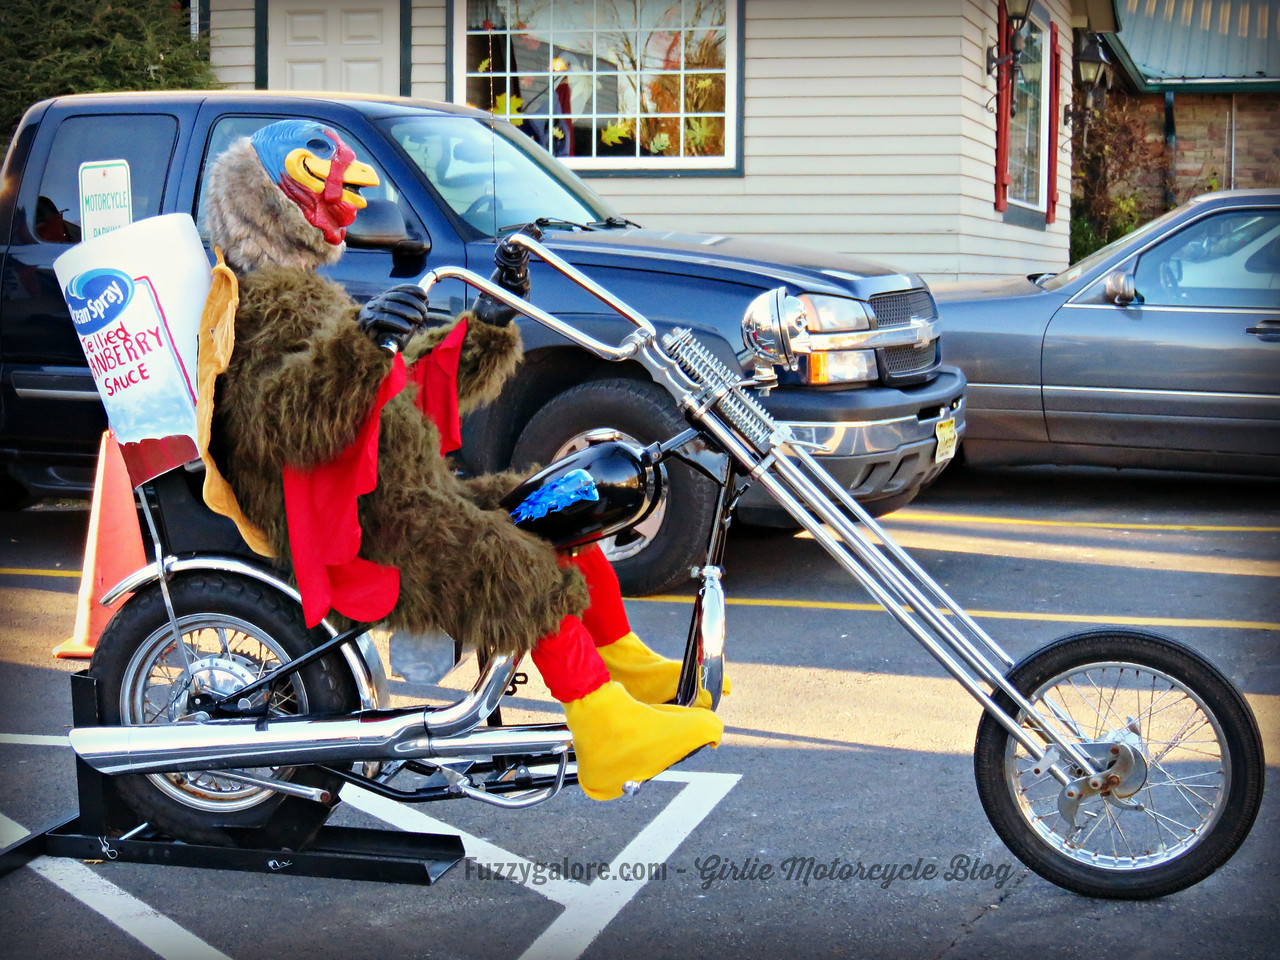 fuzzygalore turkey riding a chopper motorcycle